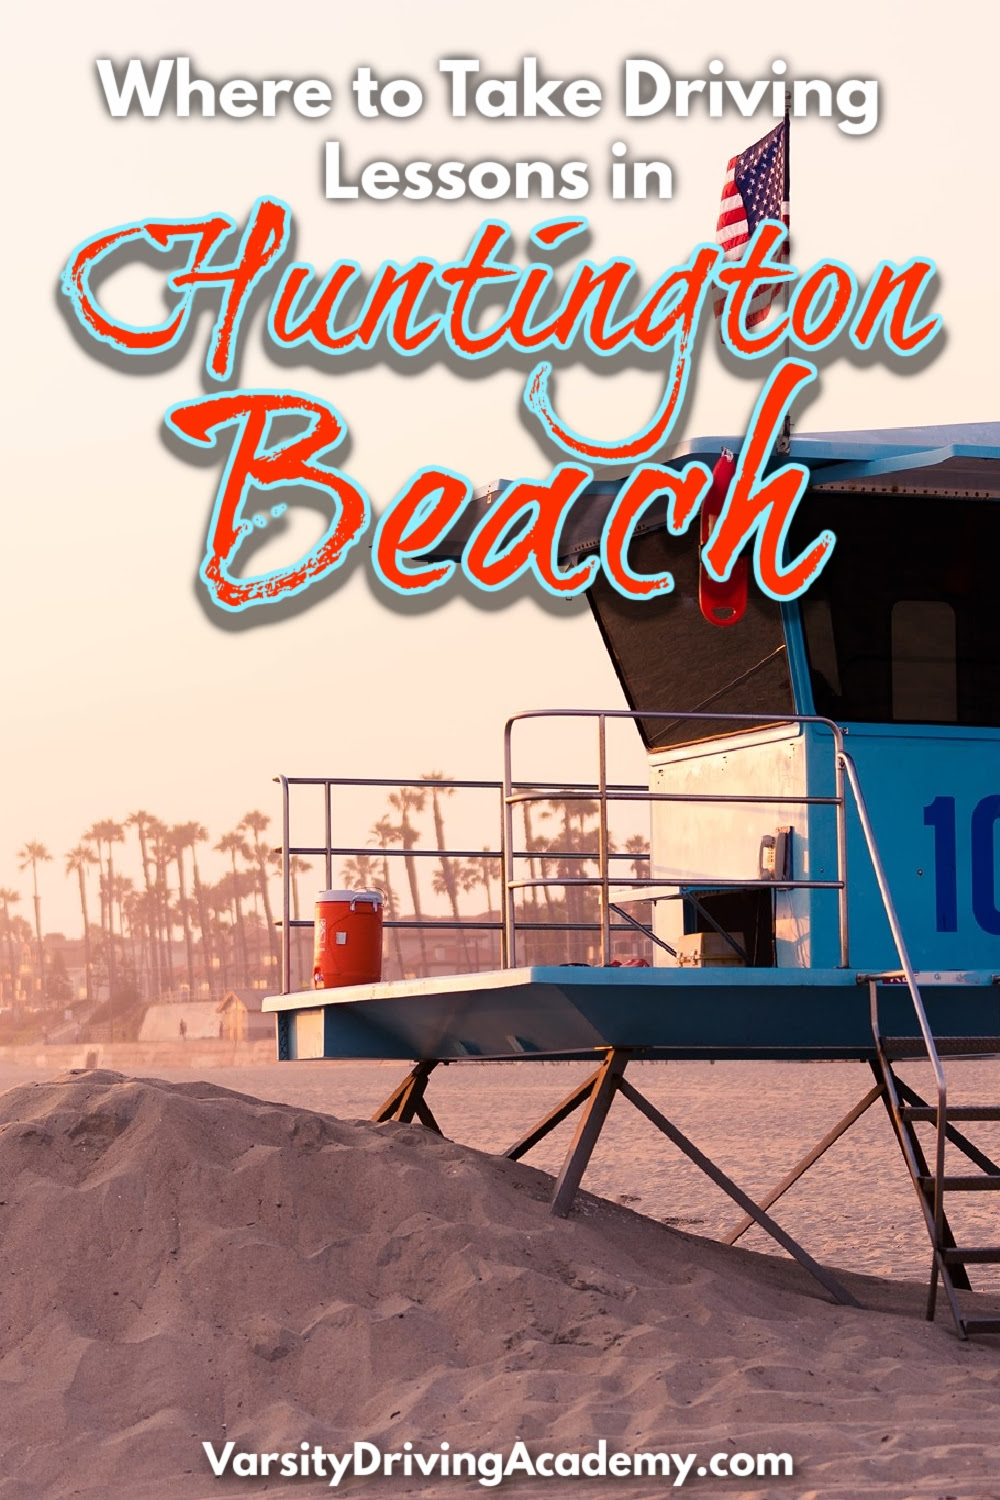 Knowing where to take driving lessons in Huntington Beach is only the beginning of the process you need to pass to get a driver's license.